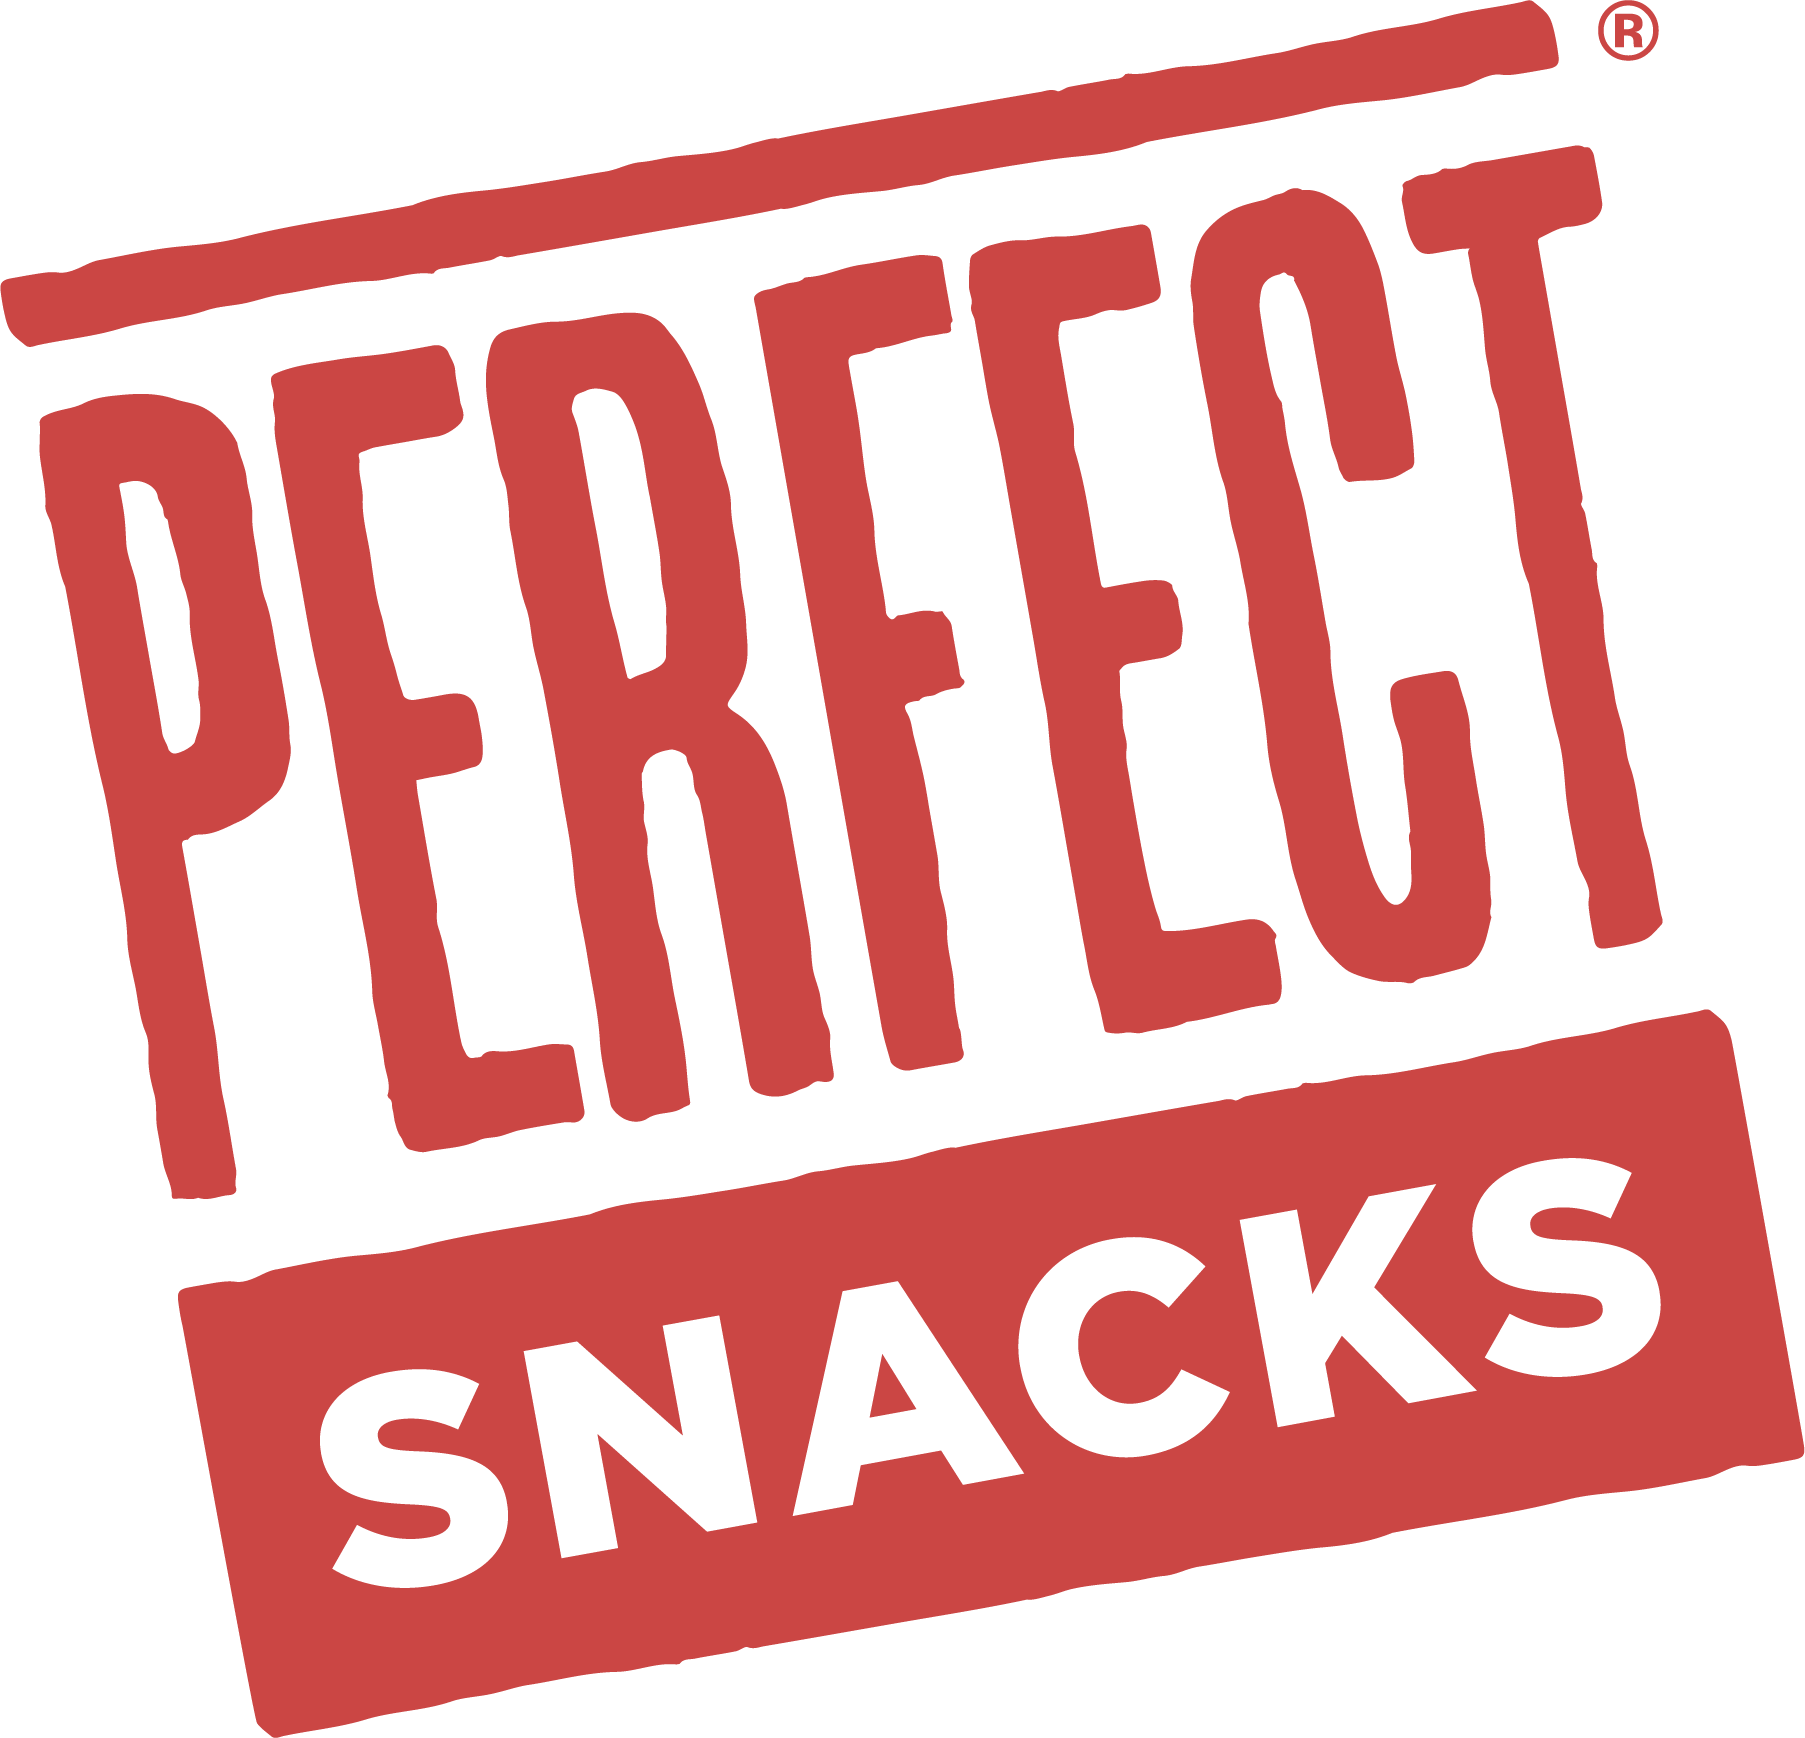 PerfectSnacks_Red_R.PNG